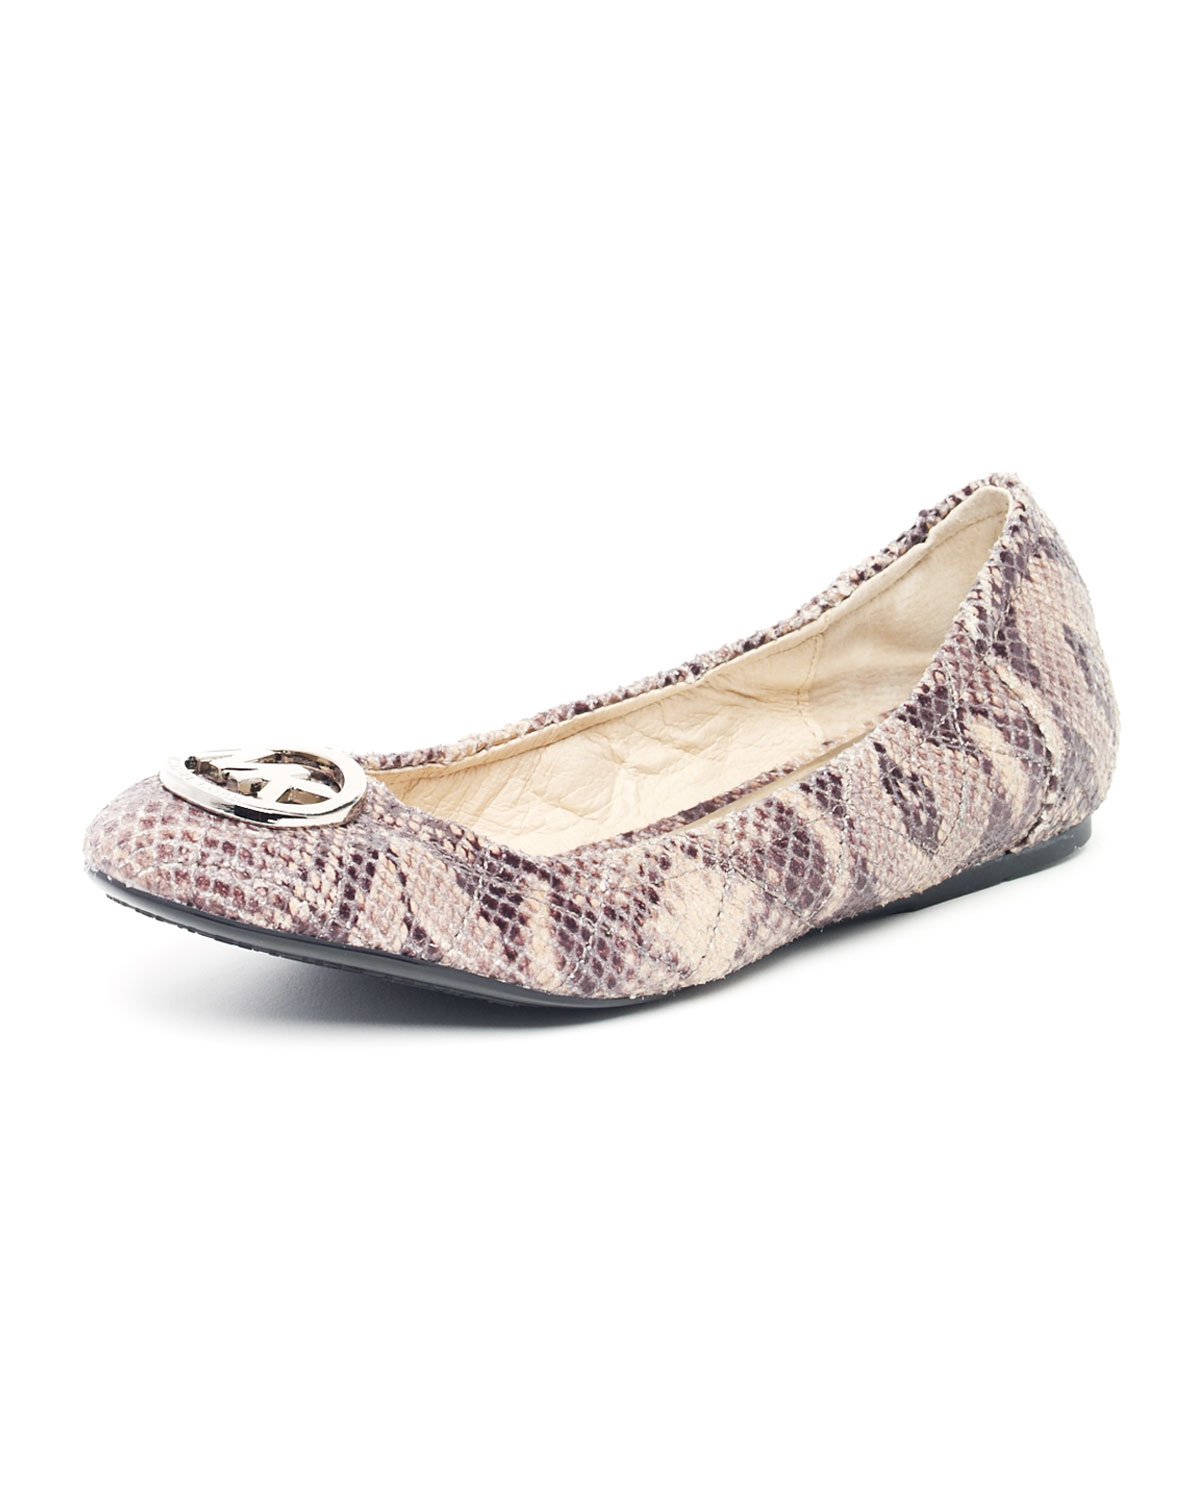 Lyst Michael Kors Fulton Quilted Python Embossed Ballet Flat